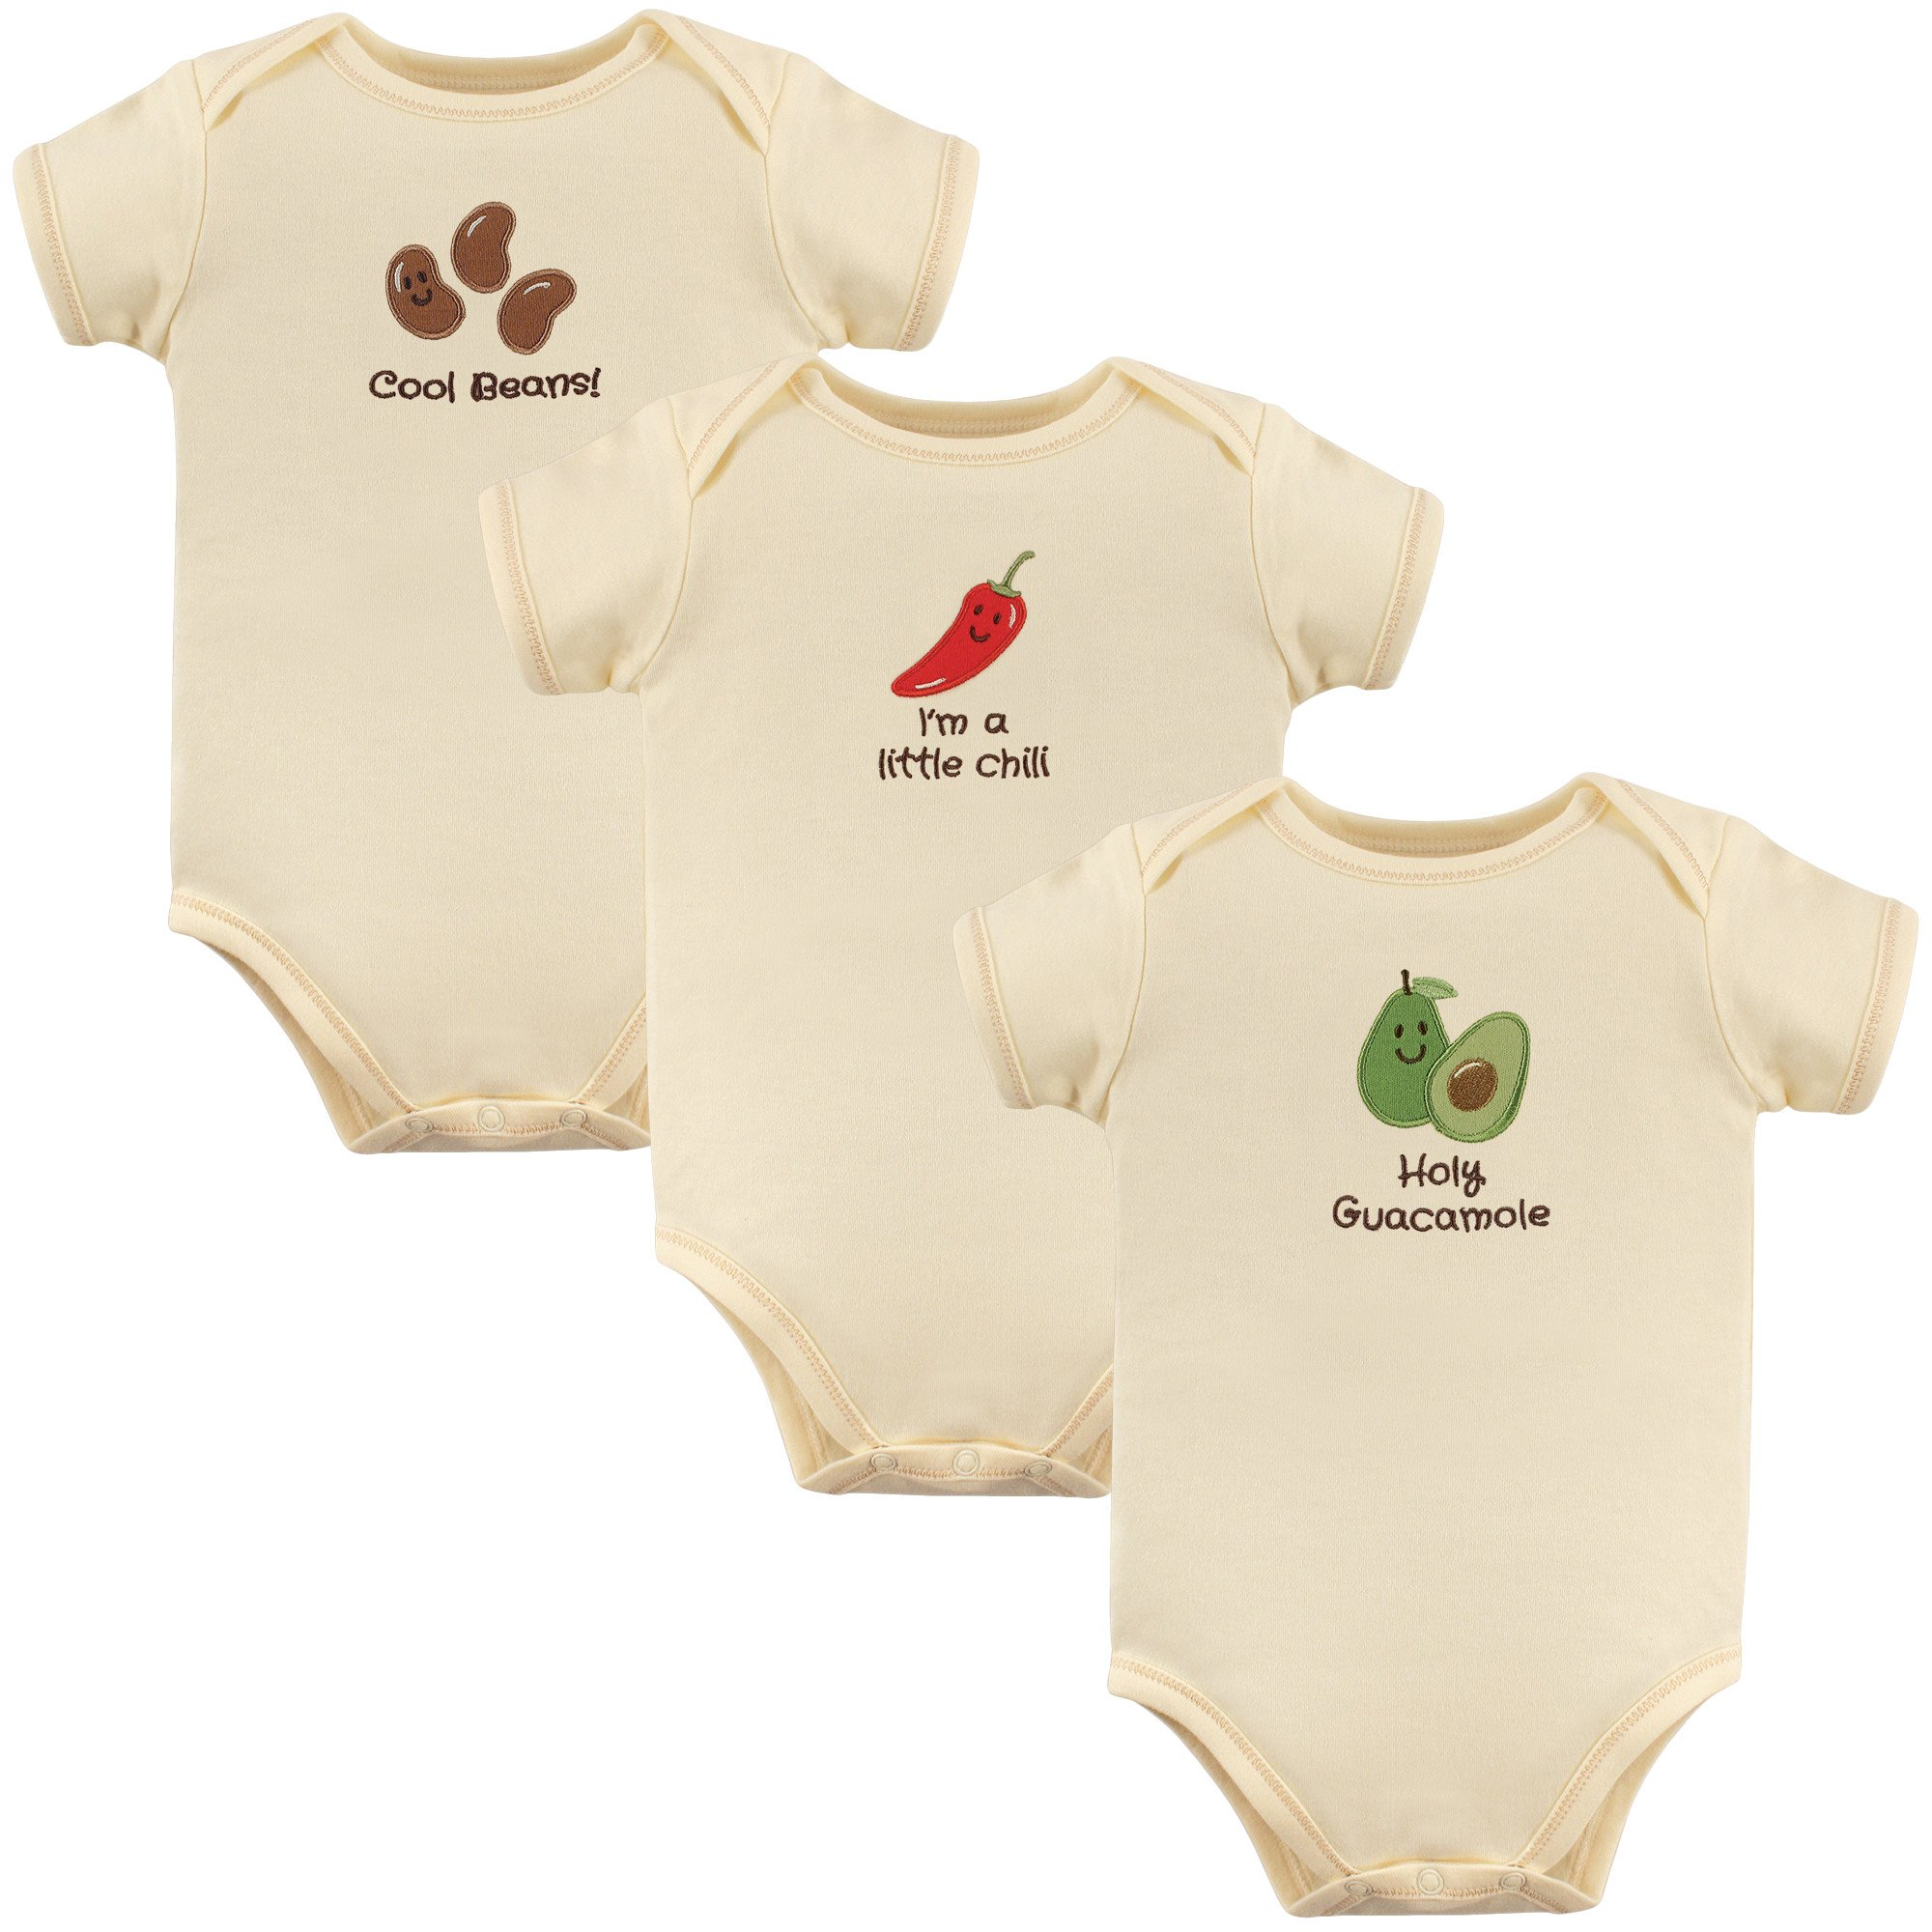 Touched by Nature Unisex Baby Organic Cotton Bodysuits, Holy Guacamole 3-Pack, 0-3 Months (3M)